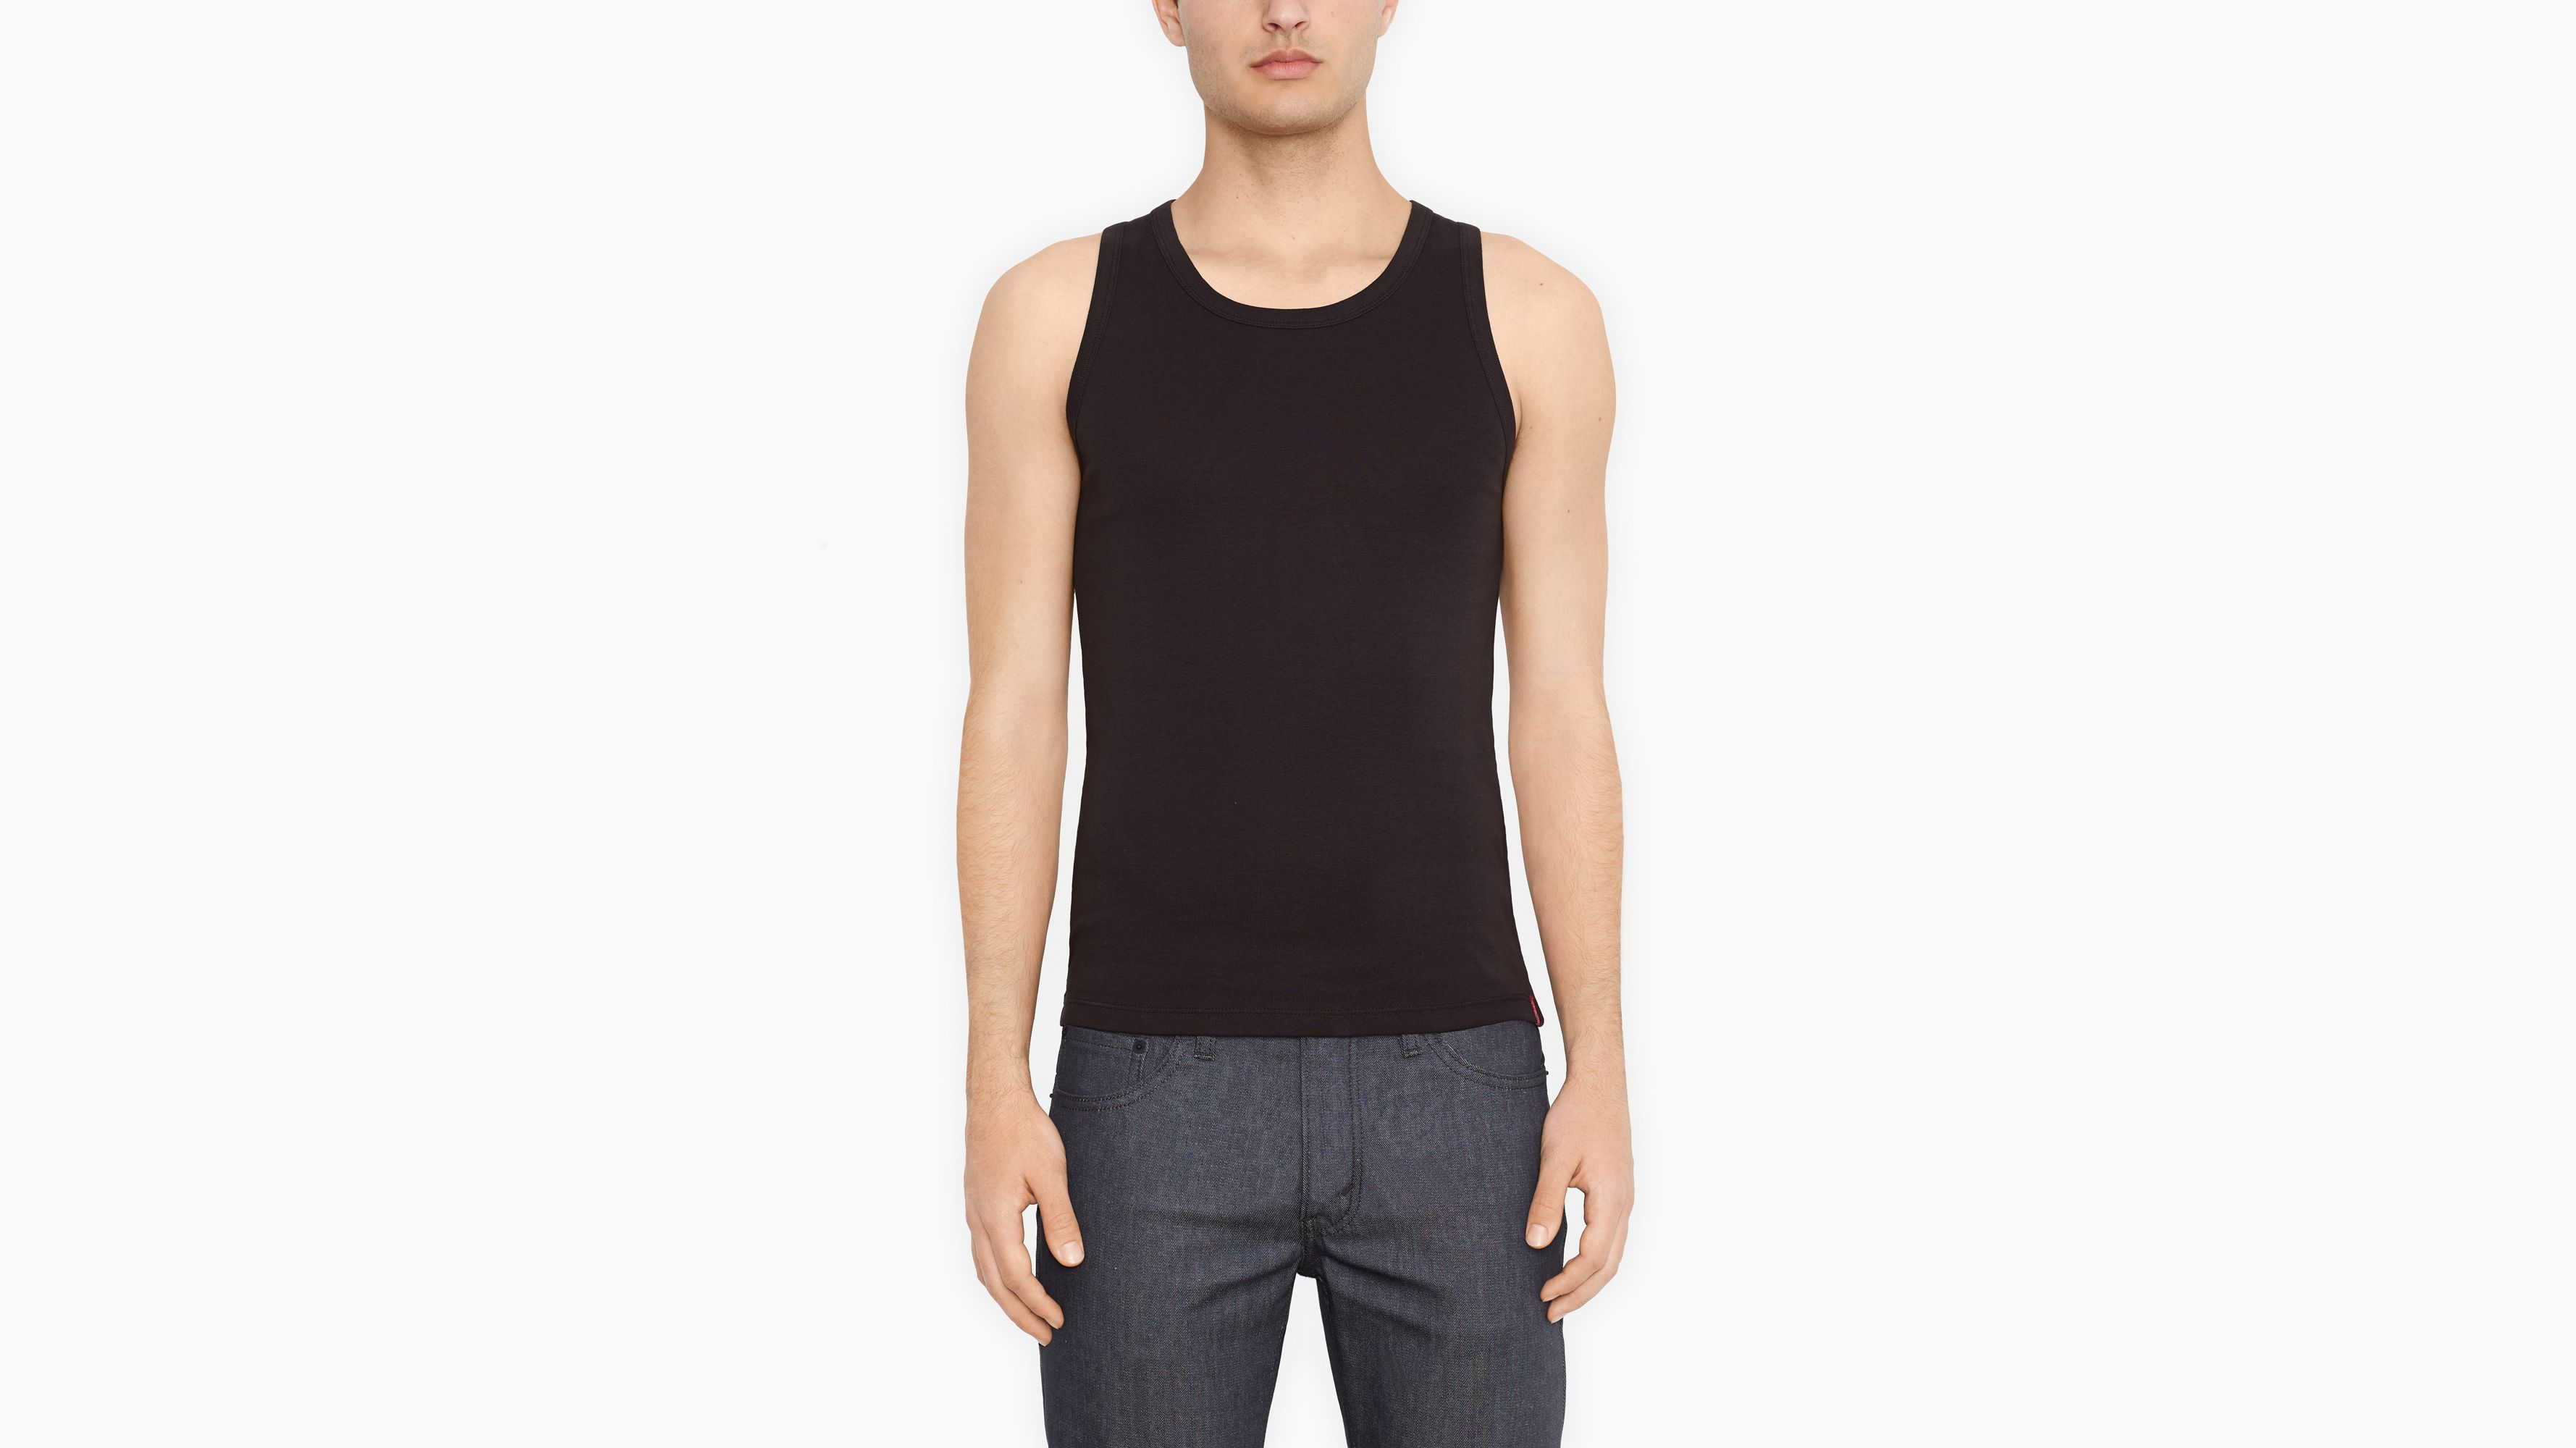 Slim Fit Tanks (2-pack) - Black & Black